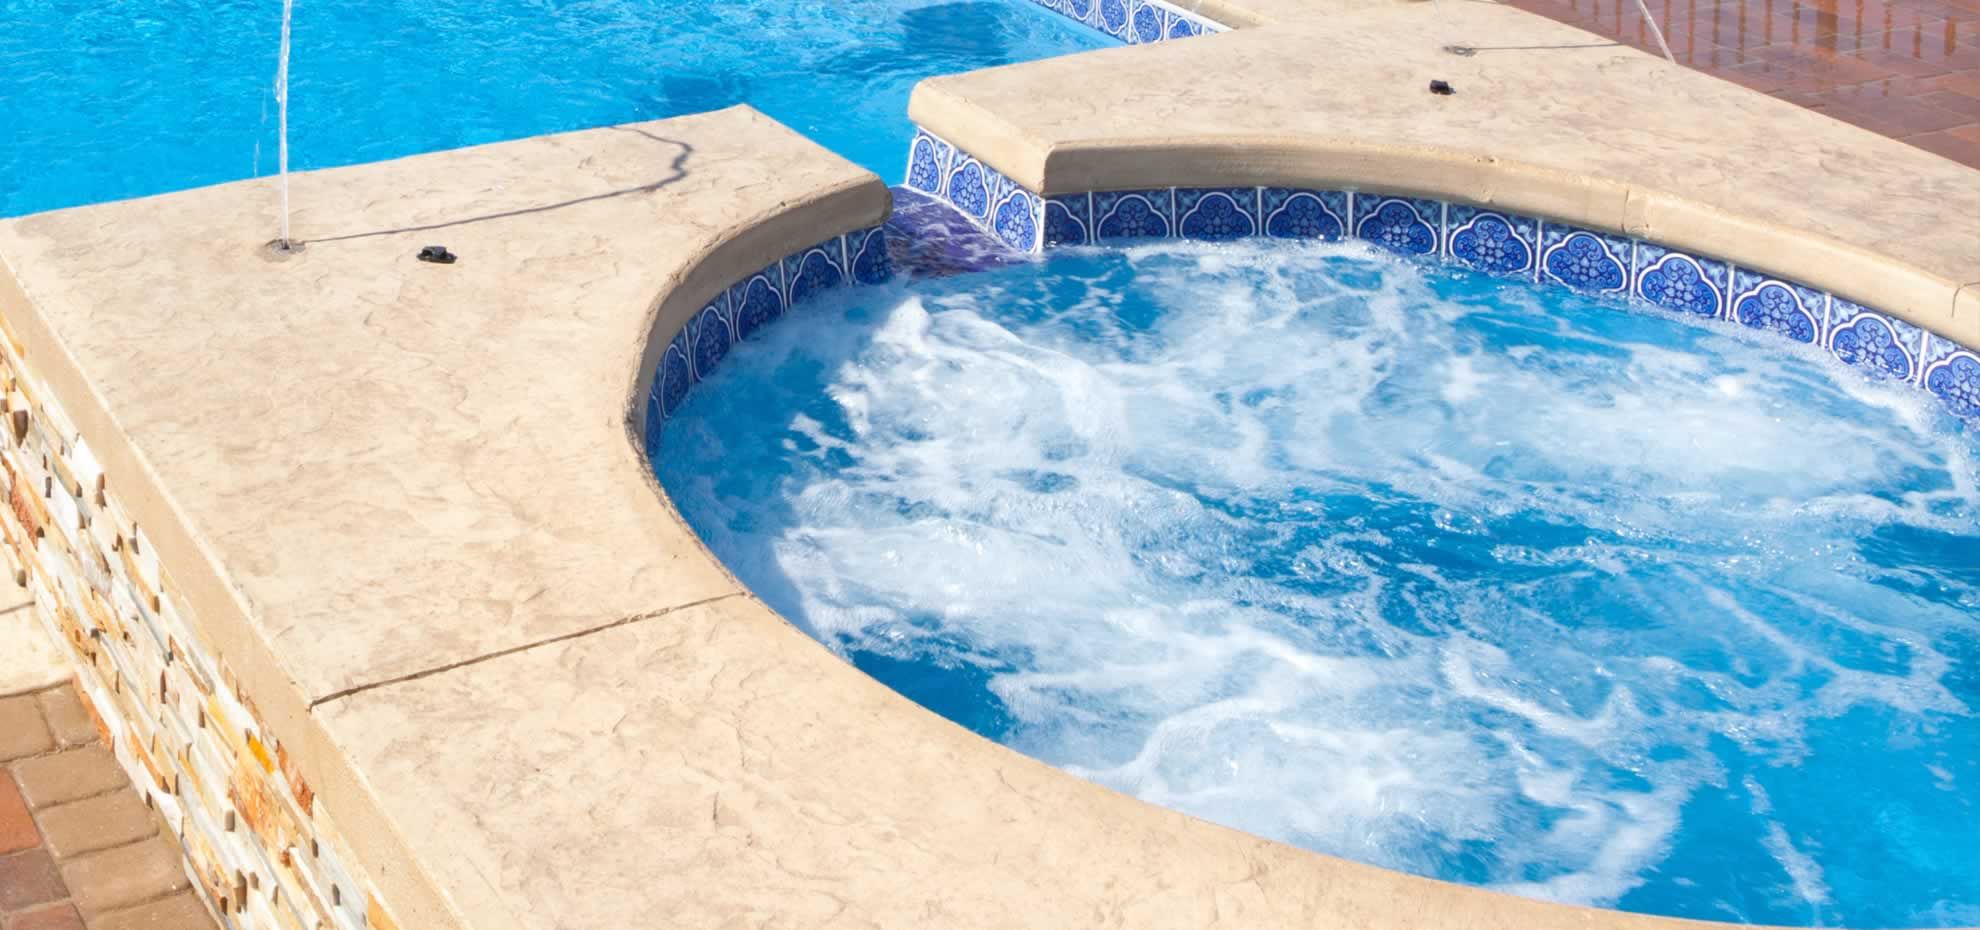 Fibreglass pool coping by Leisure Pools